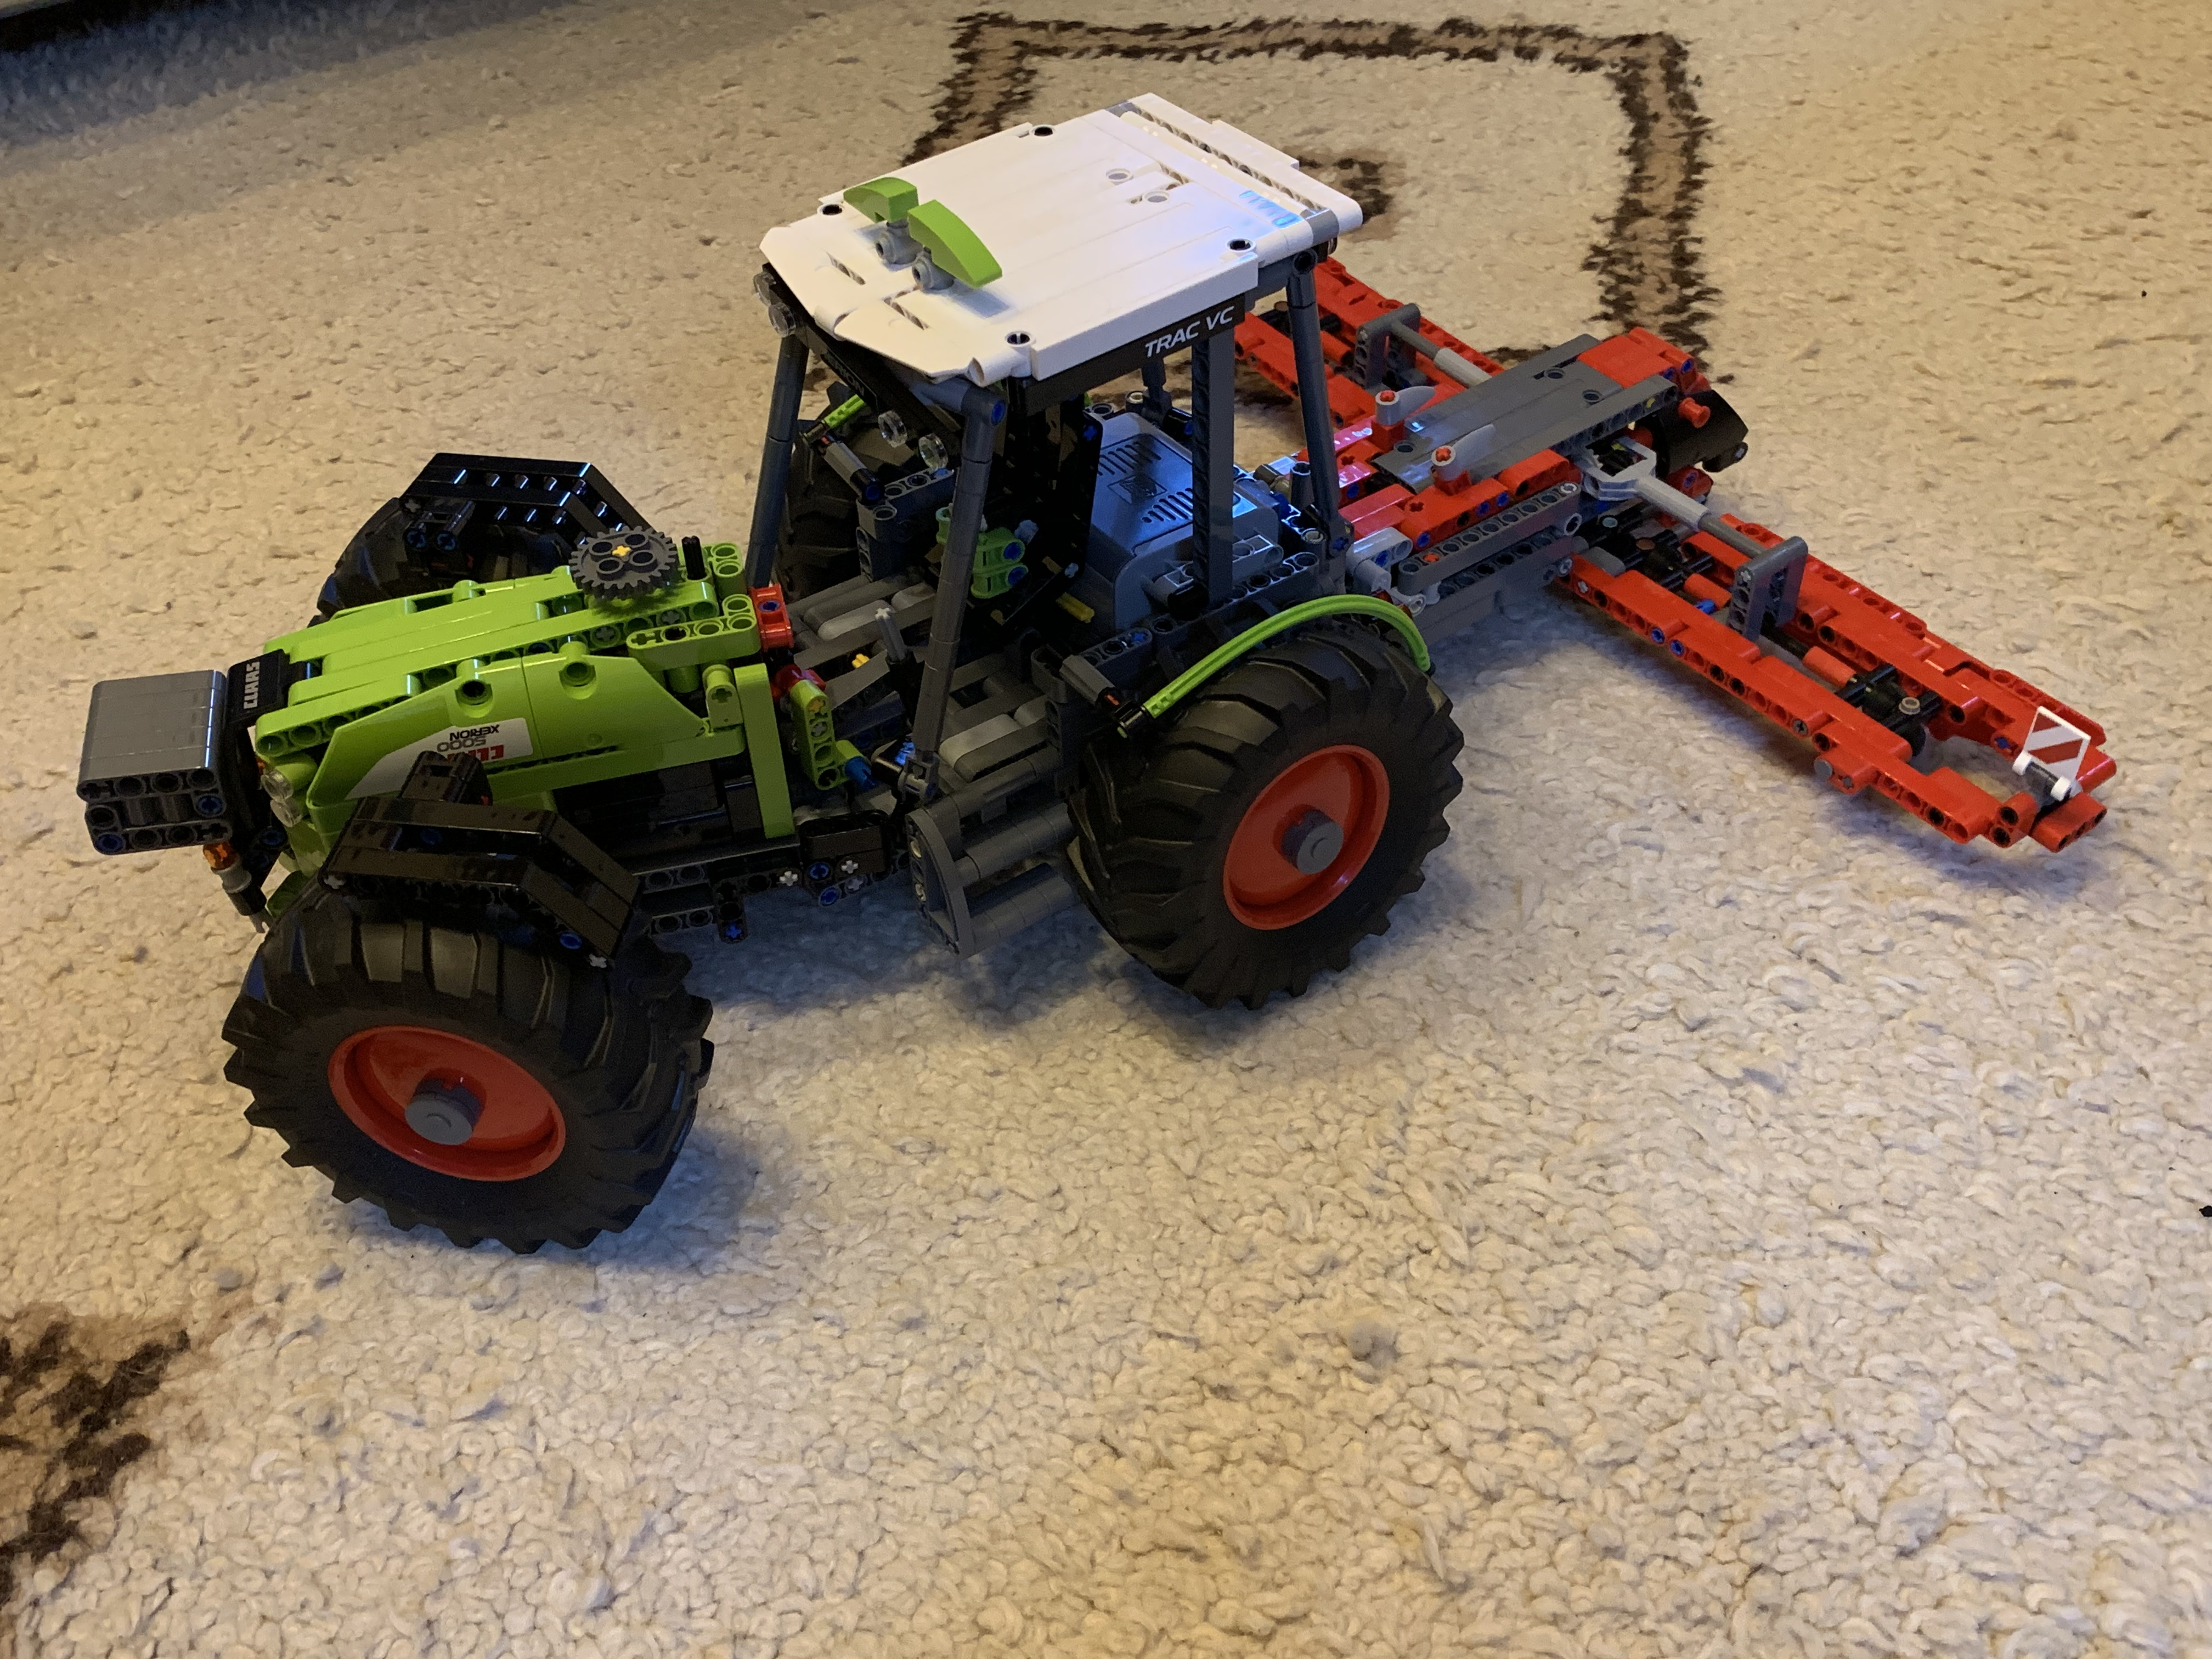 TECHNIC MOC-13581 2-Stage Tractor | 42054 C Model by BrickbyBrickTechnic MOCBRICKLAND